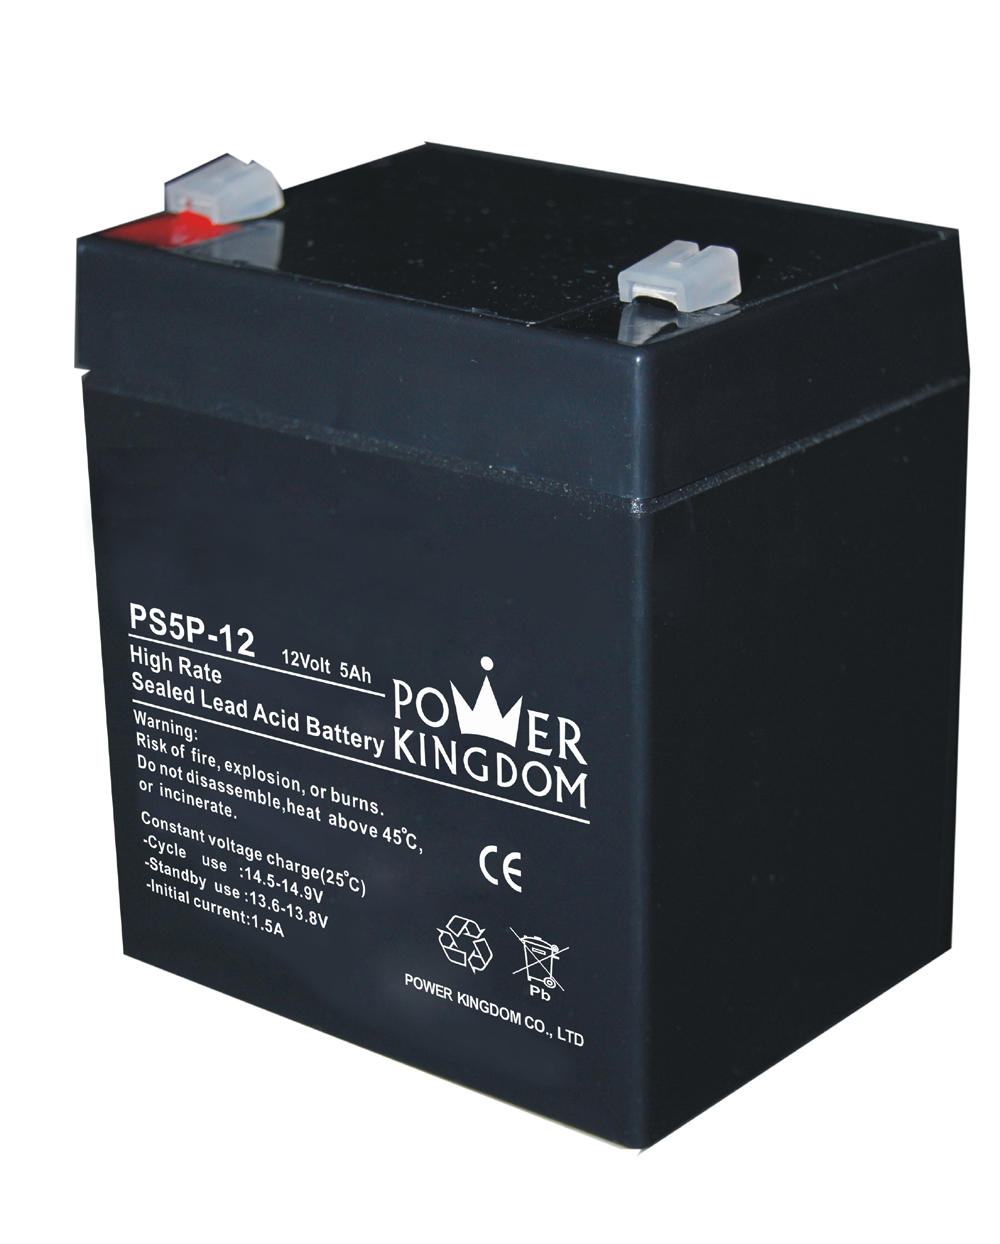 Power Kingdom high rate series 5ah 12v sealed lead acid battery